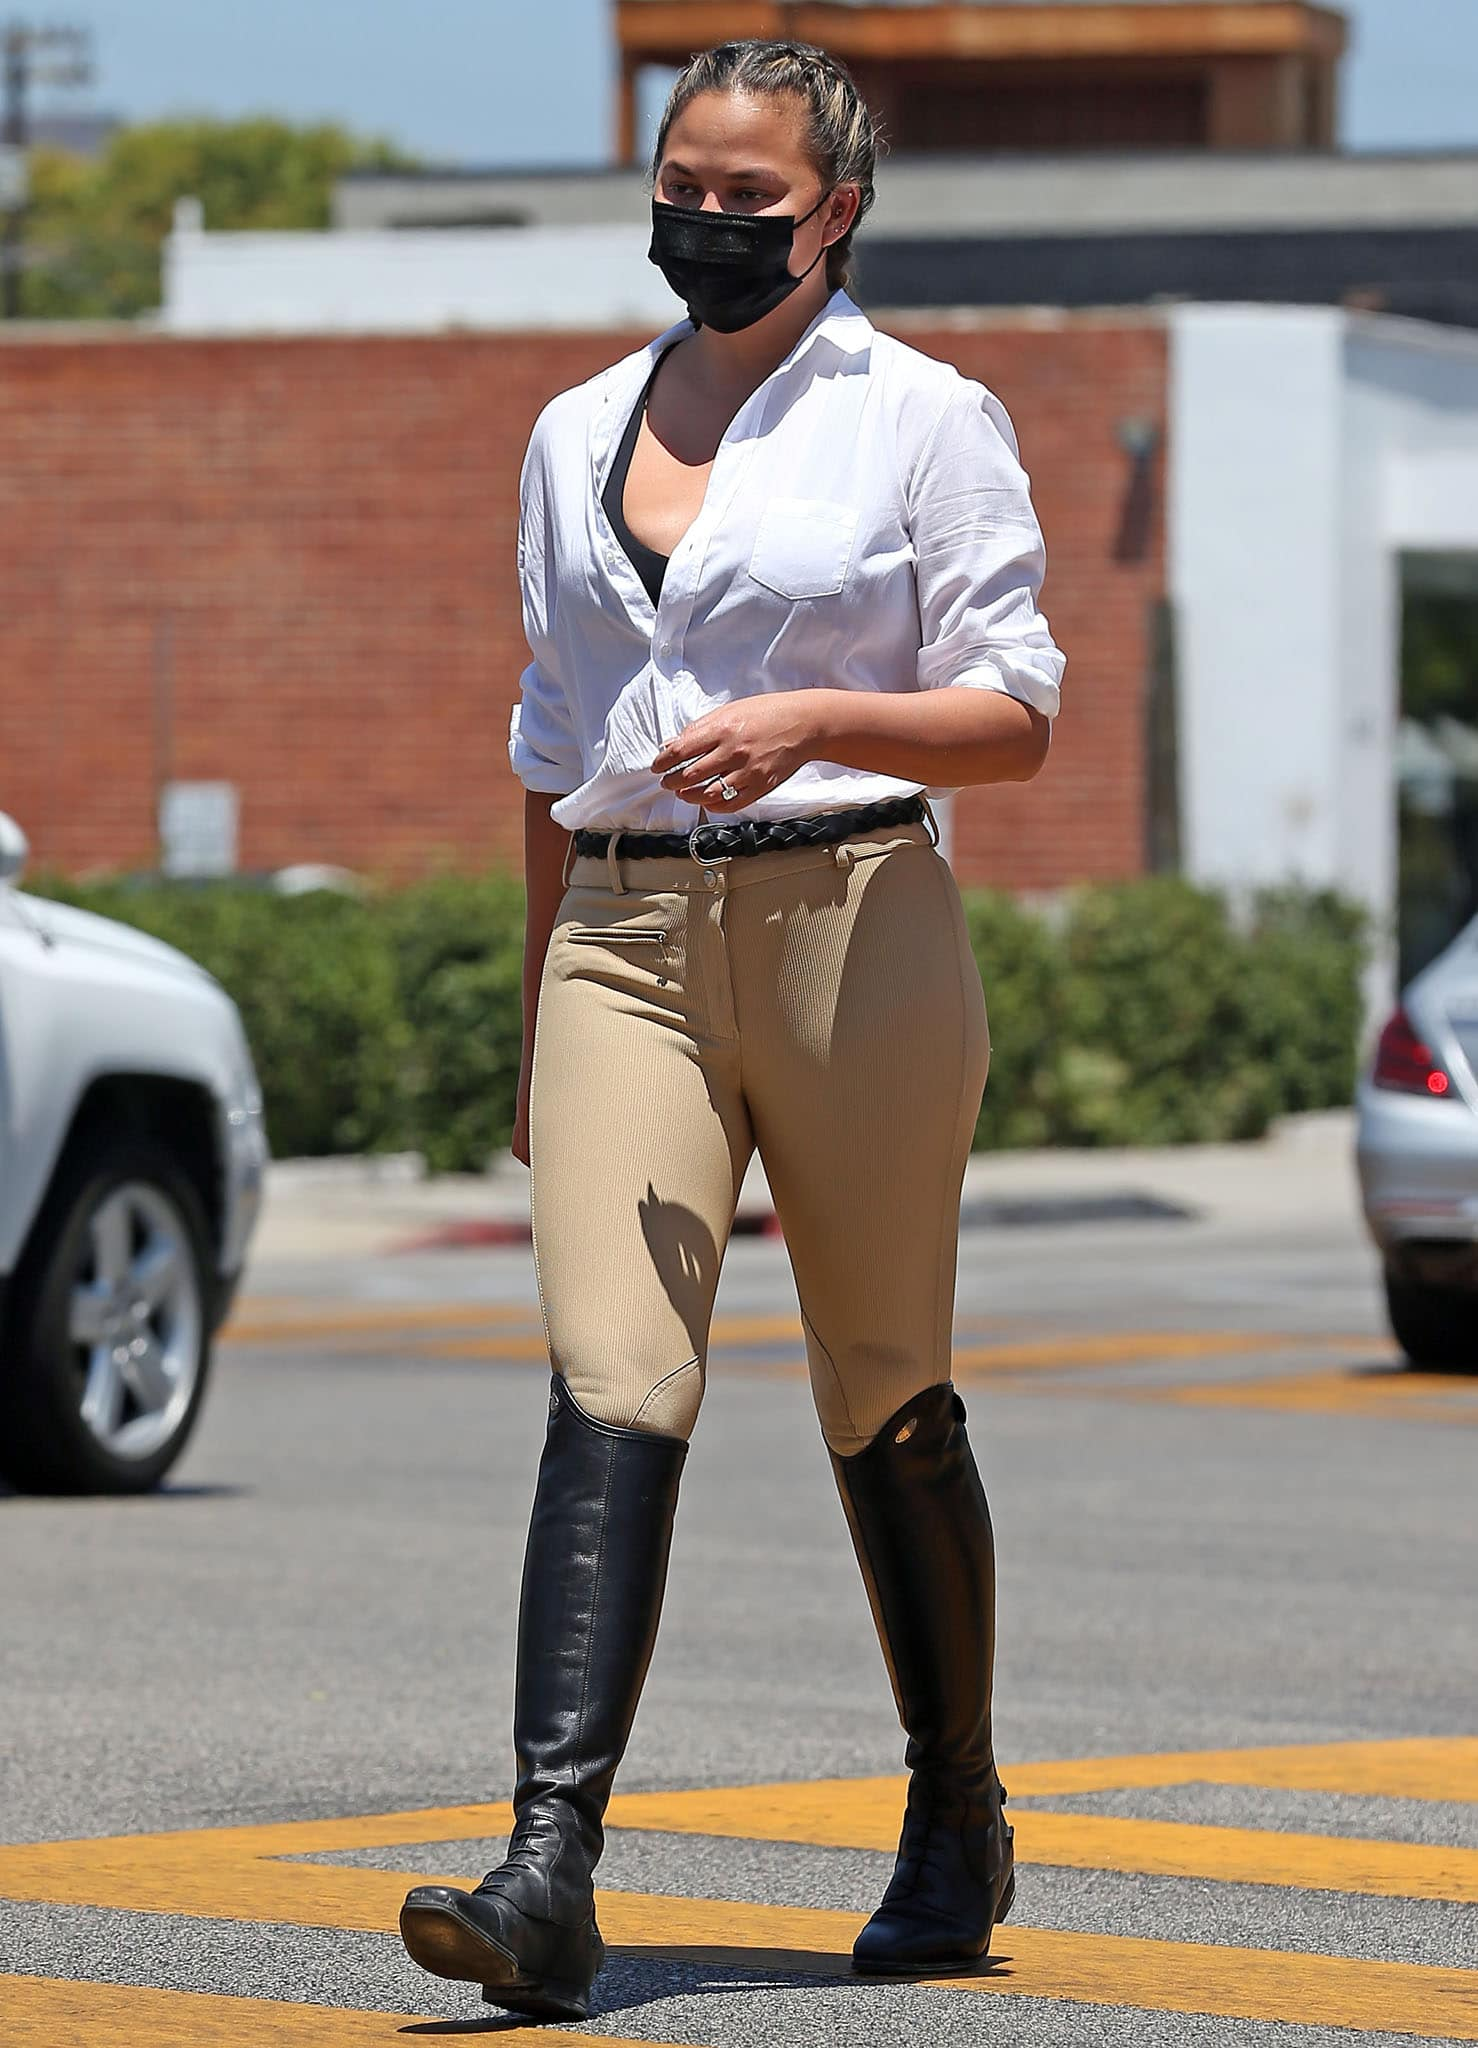 Chrissy Teigen opts for an equestrian-inspired outfit with Frank & Eileen white shirt, Tuffrider pants, and Isabel Marant belt